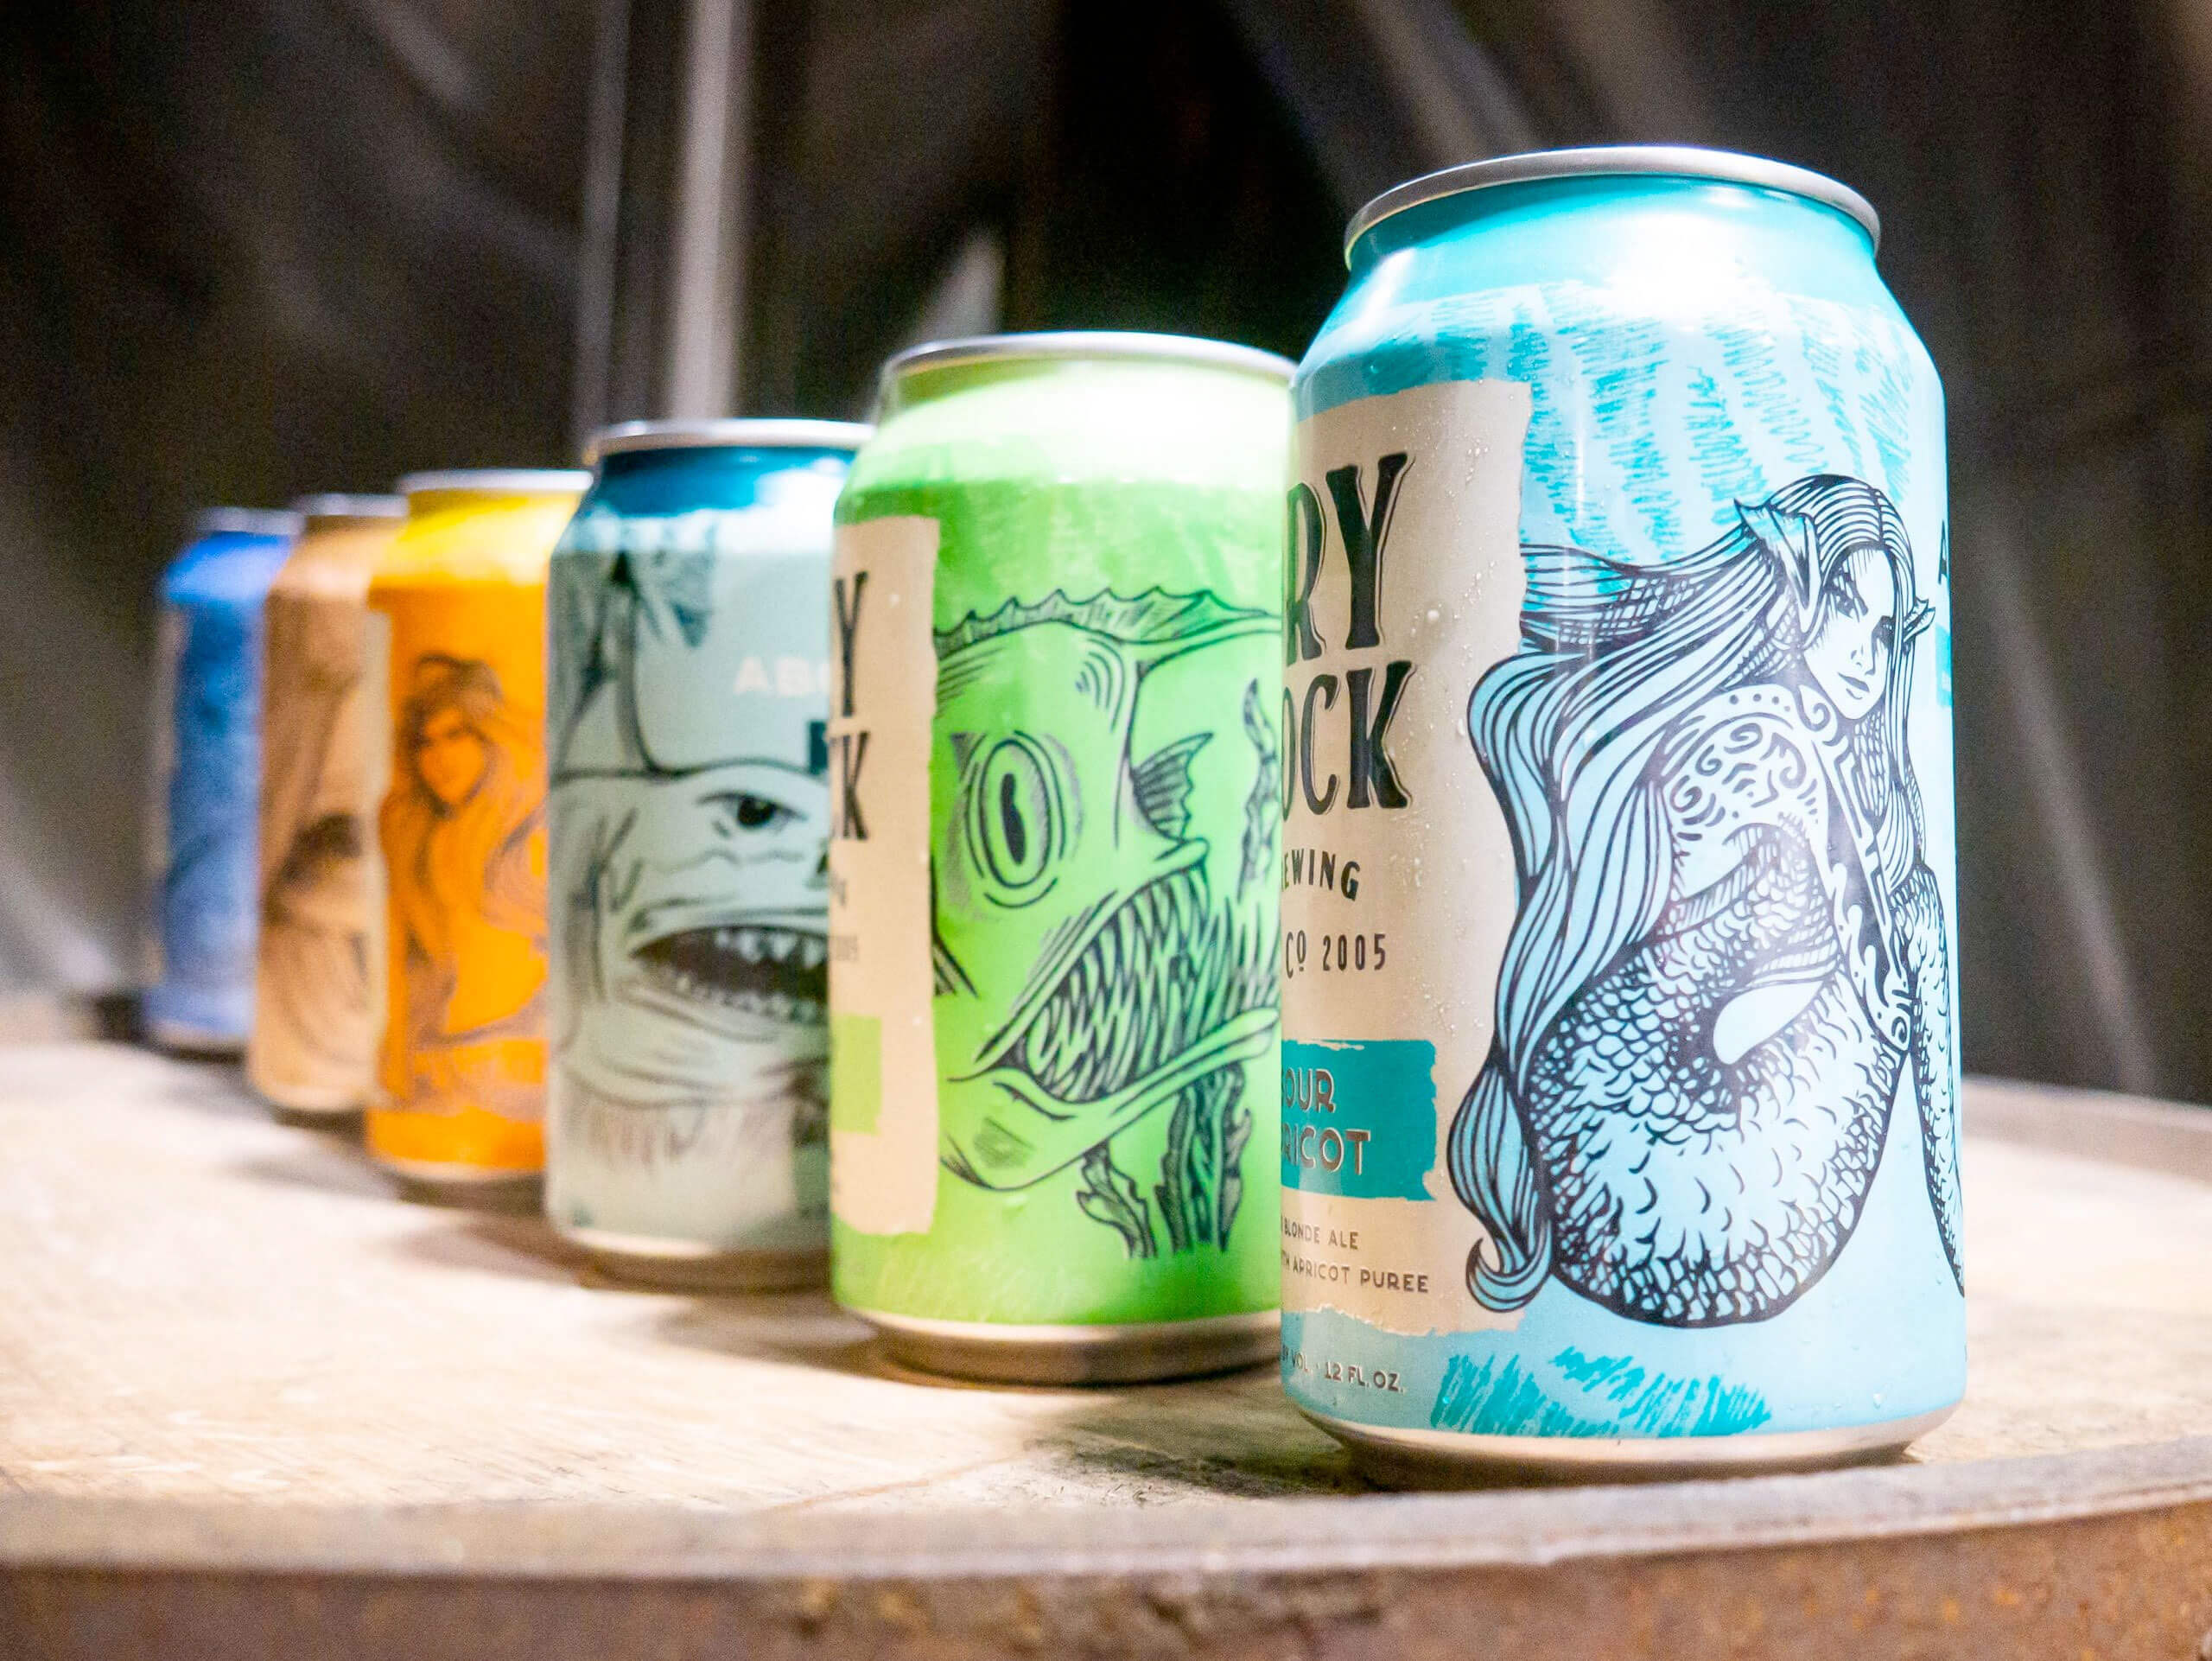 Redesigned 12 oz. cans by Dry Dock Brewing Company